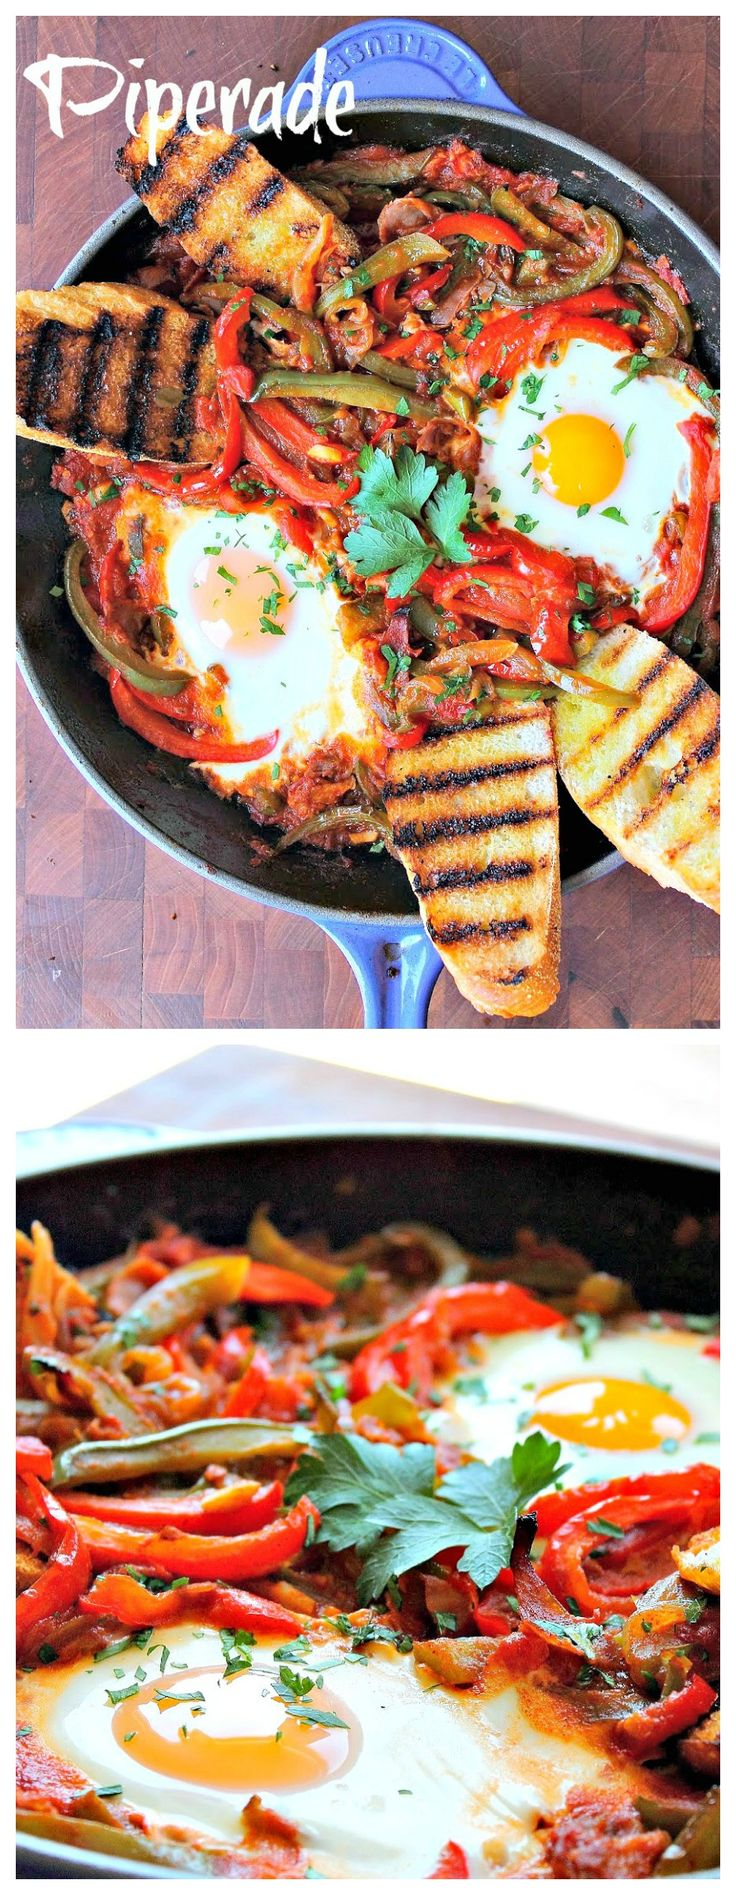 Piperade - Classic French #basque #cuisine, very delicious and great for #brunch.